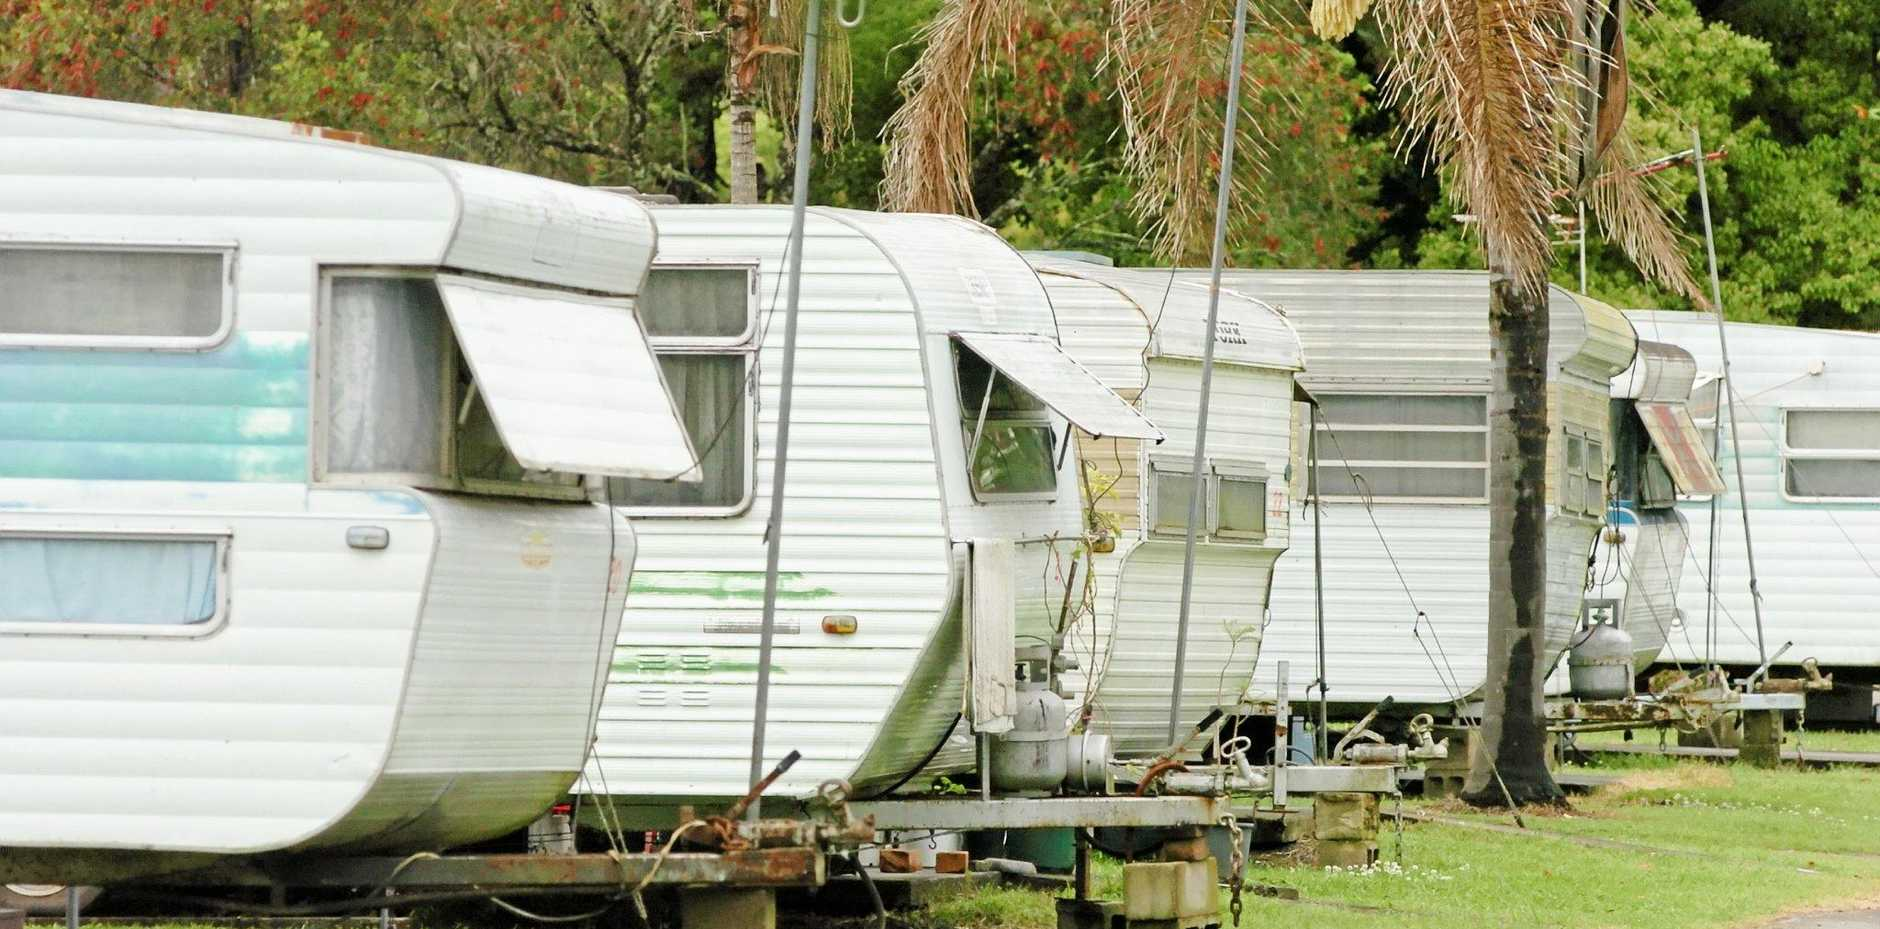 ACCESS GRANTED: Coffs Harbour City councillors voted unanimously for the proposed plan to allow for the expansion for the Bonville Caravan Park.